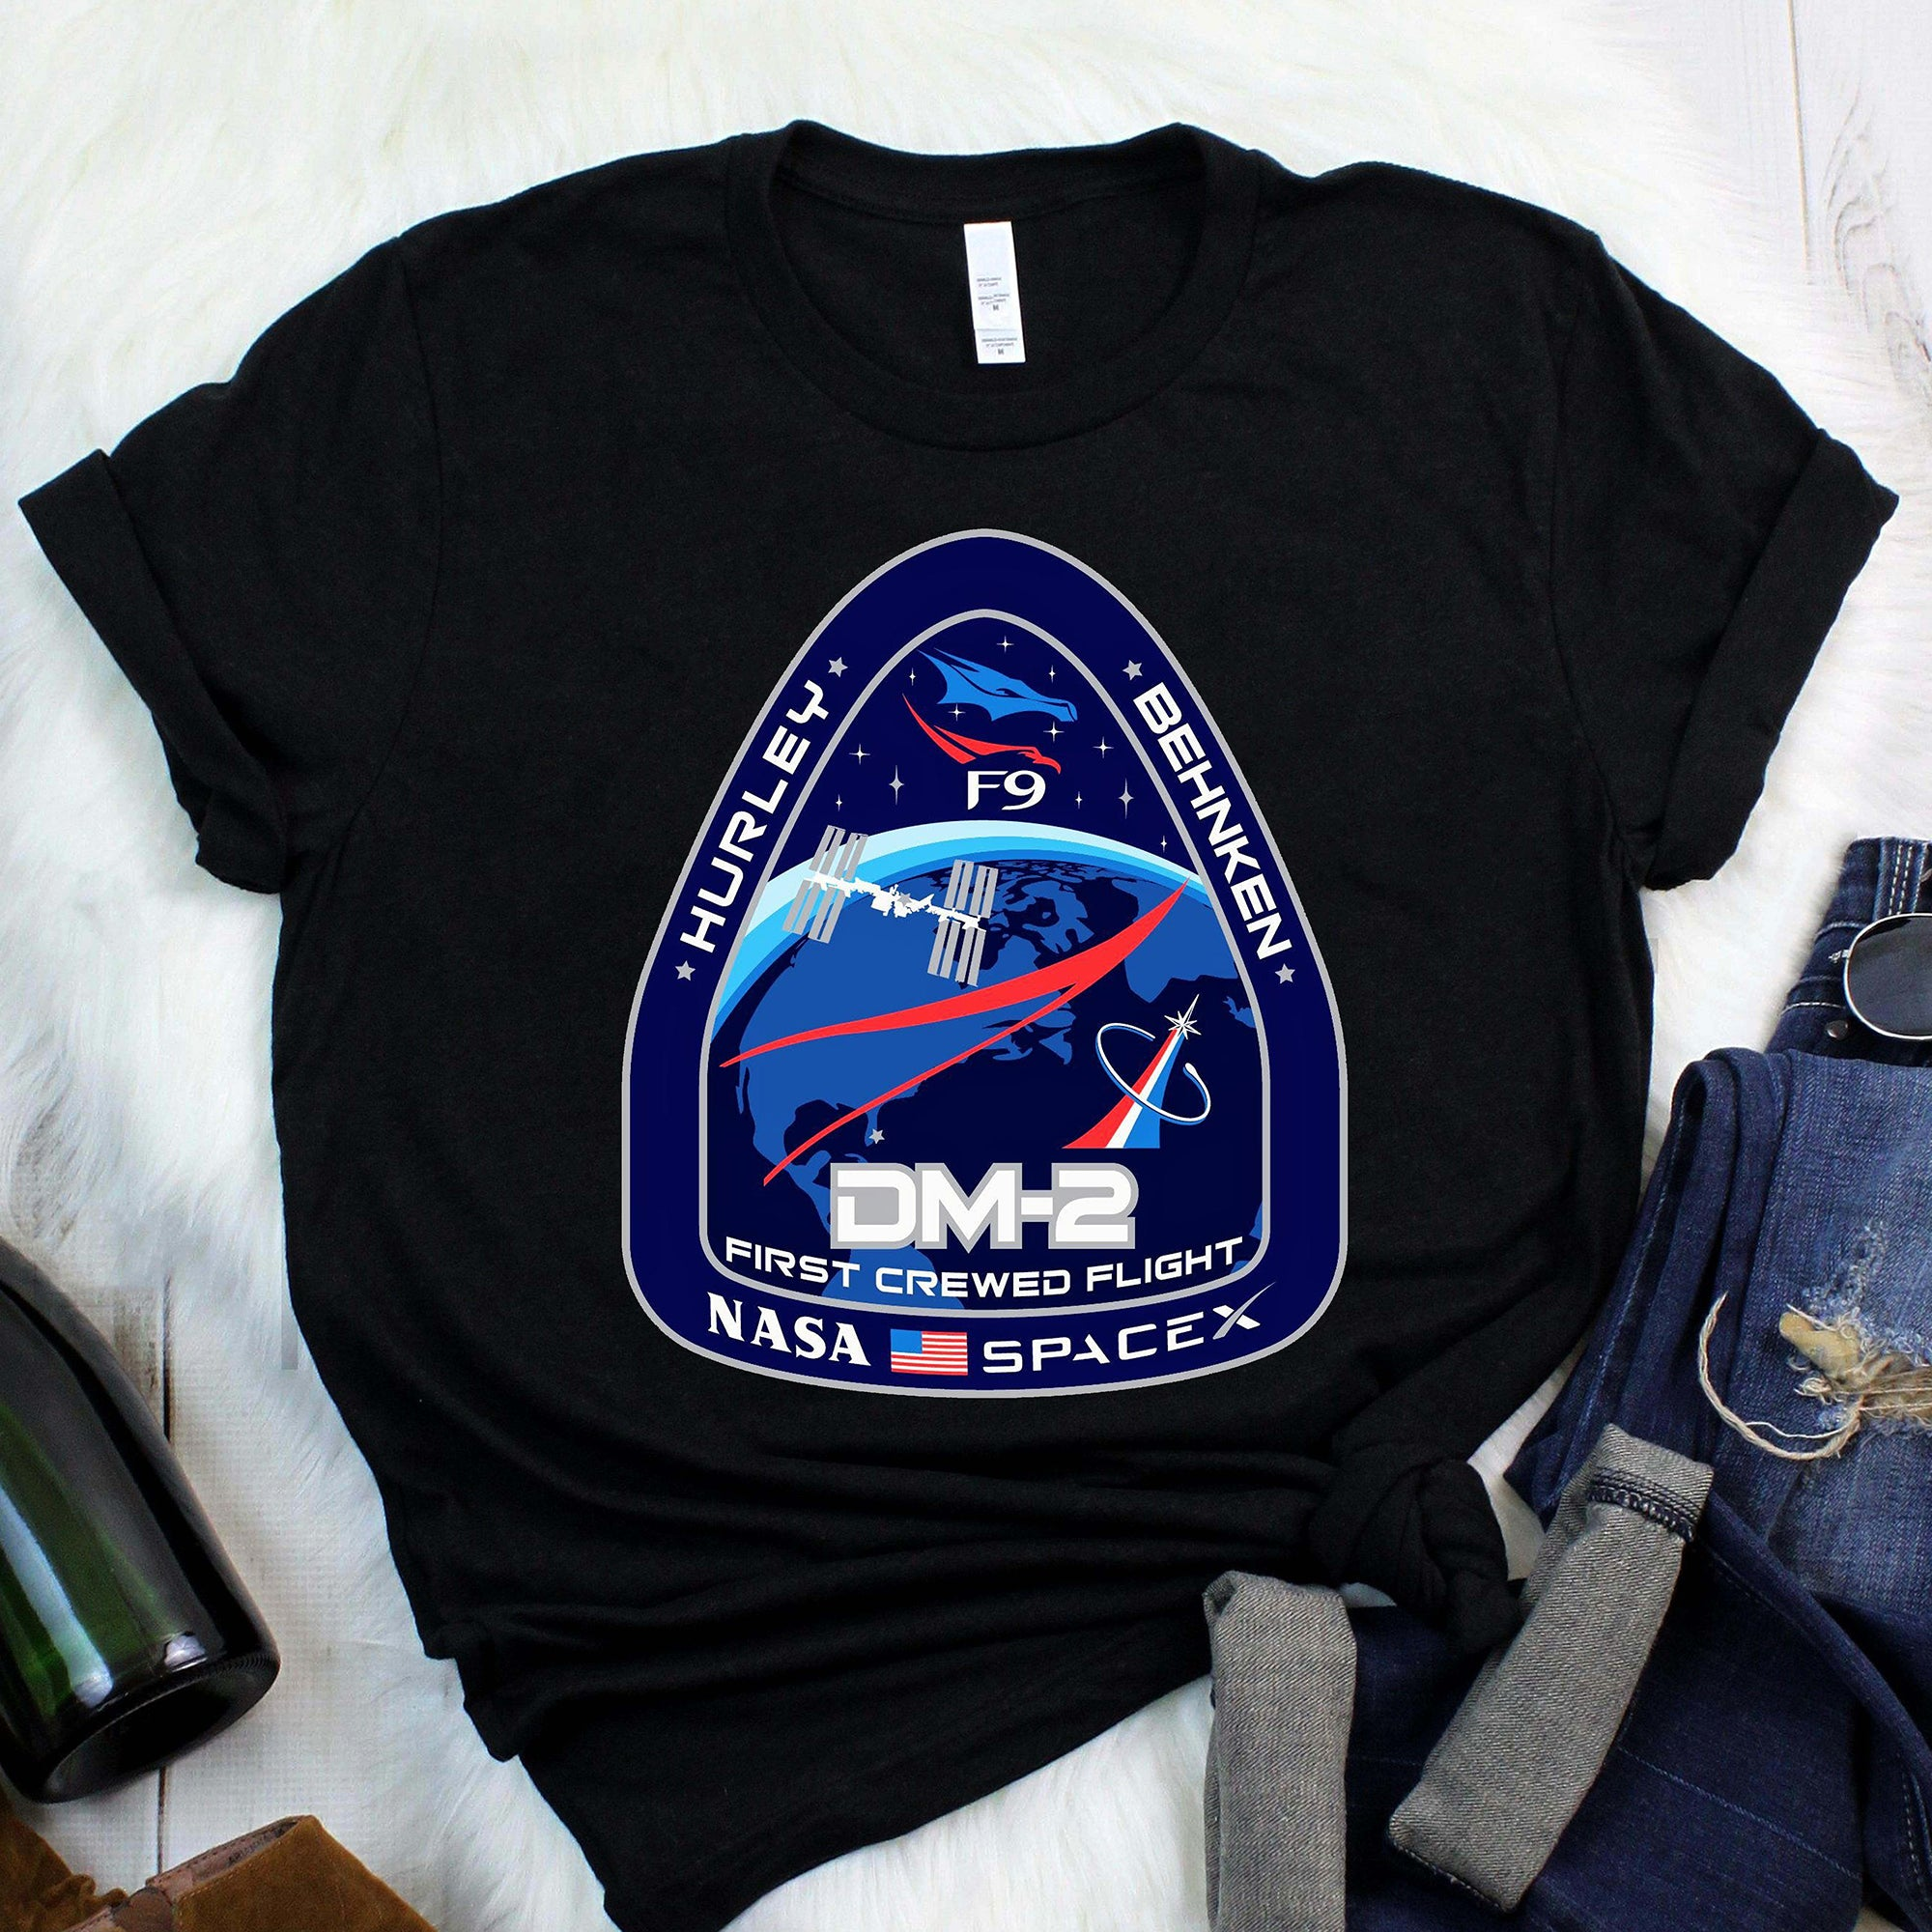 Crew Dragon Flight Demo 2 Elon Musk SpaceX Shirt